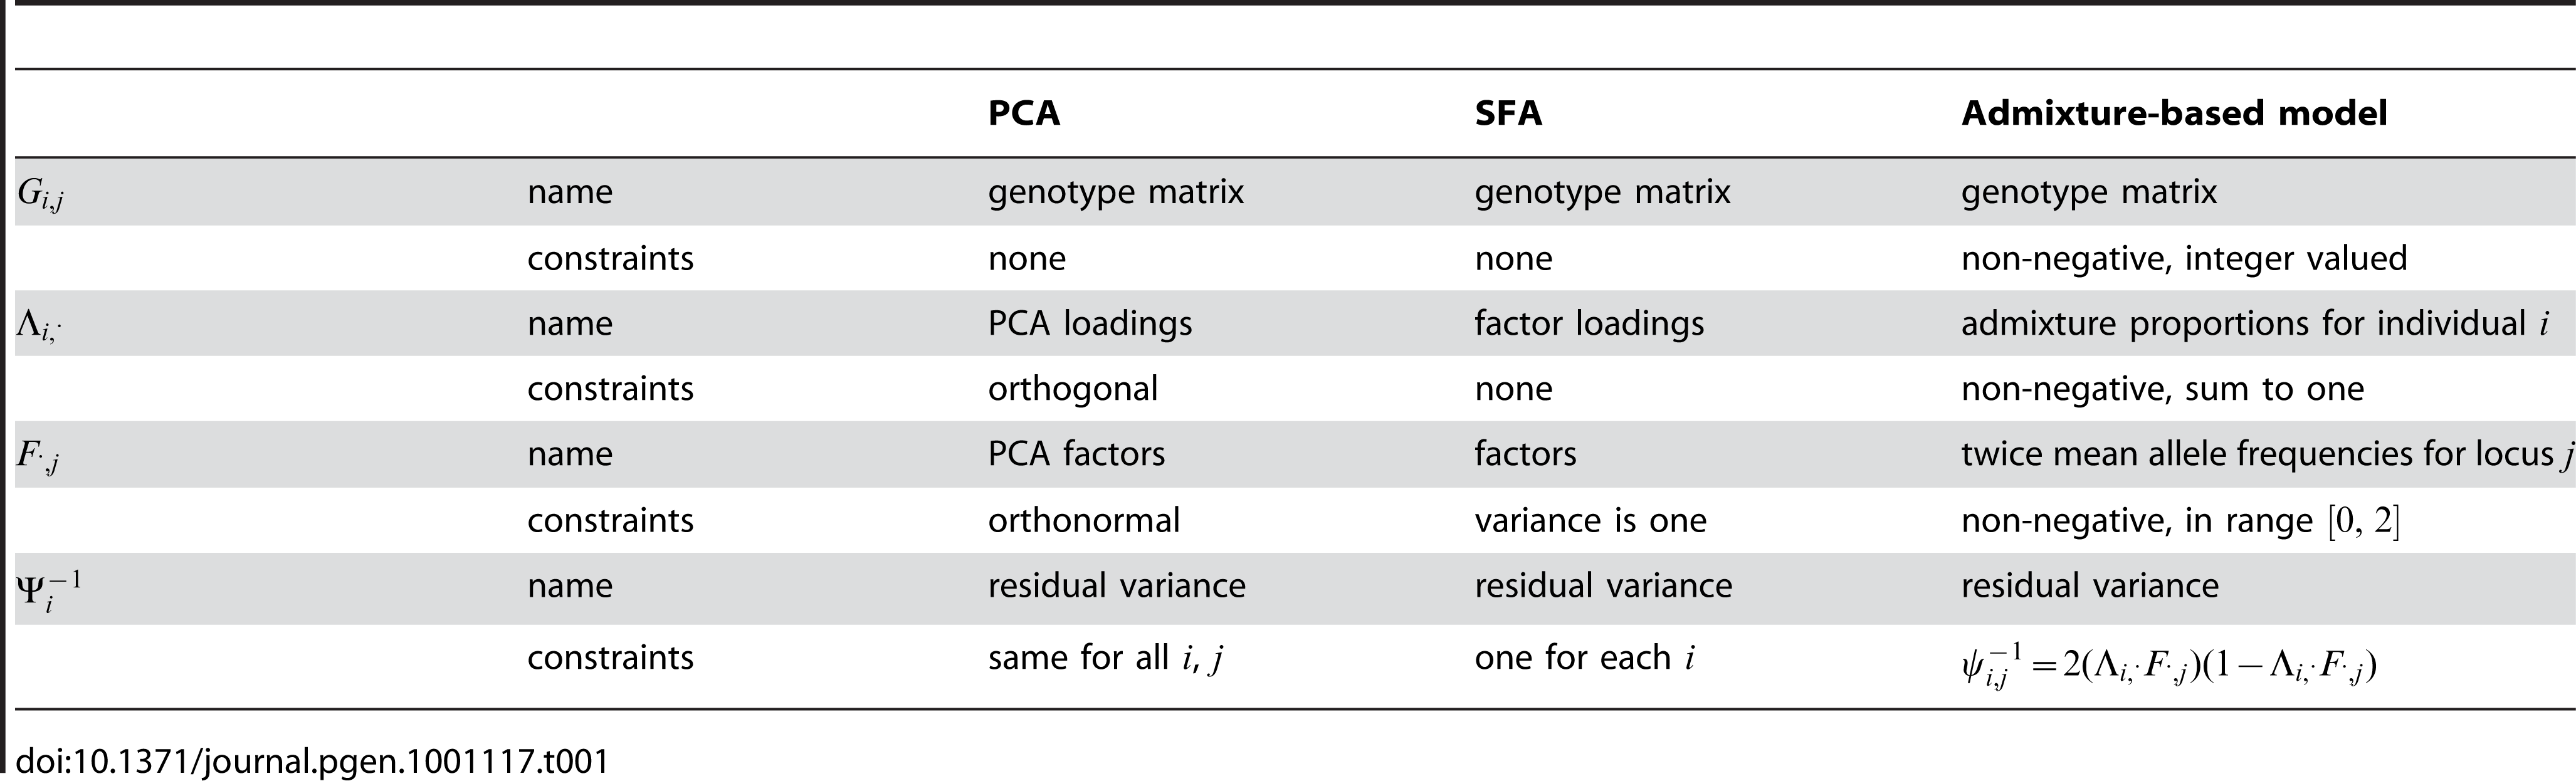 Relationship of terms in PCA, SFA, and admixture-based models.